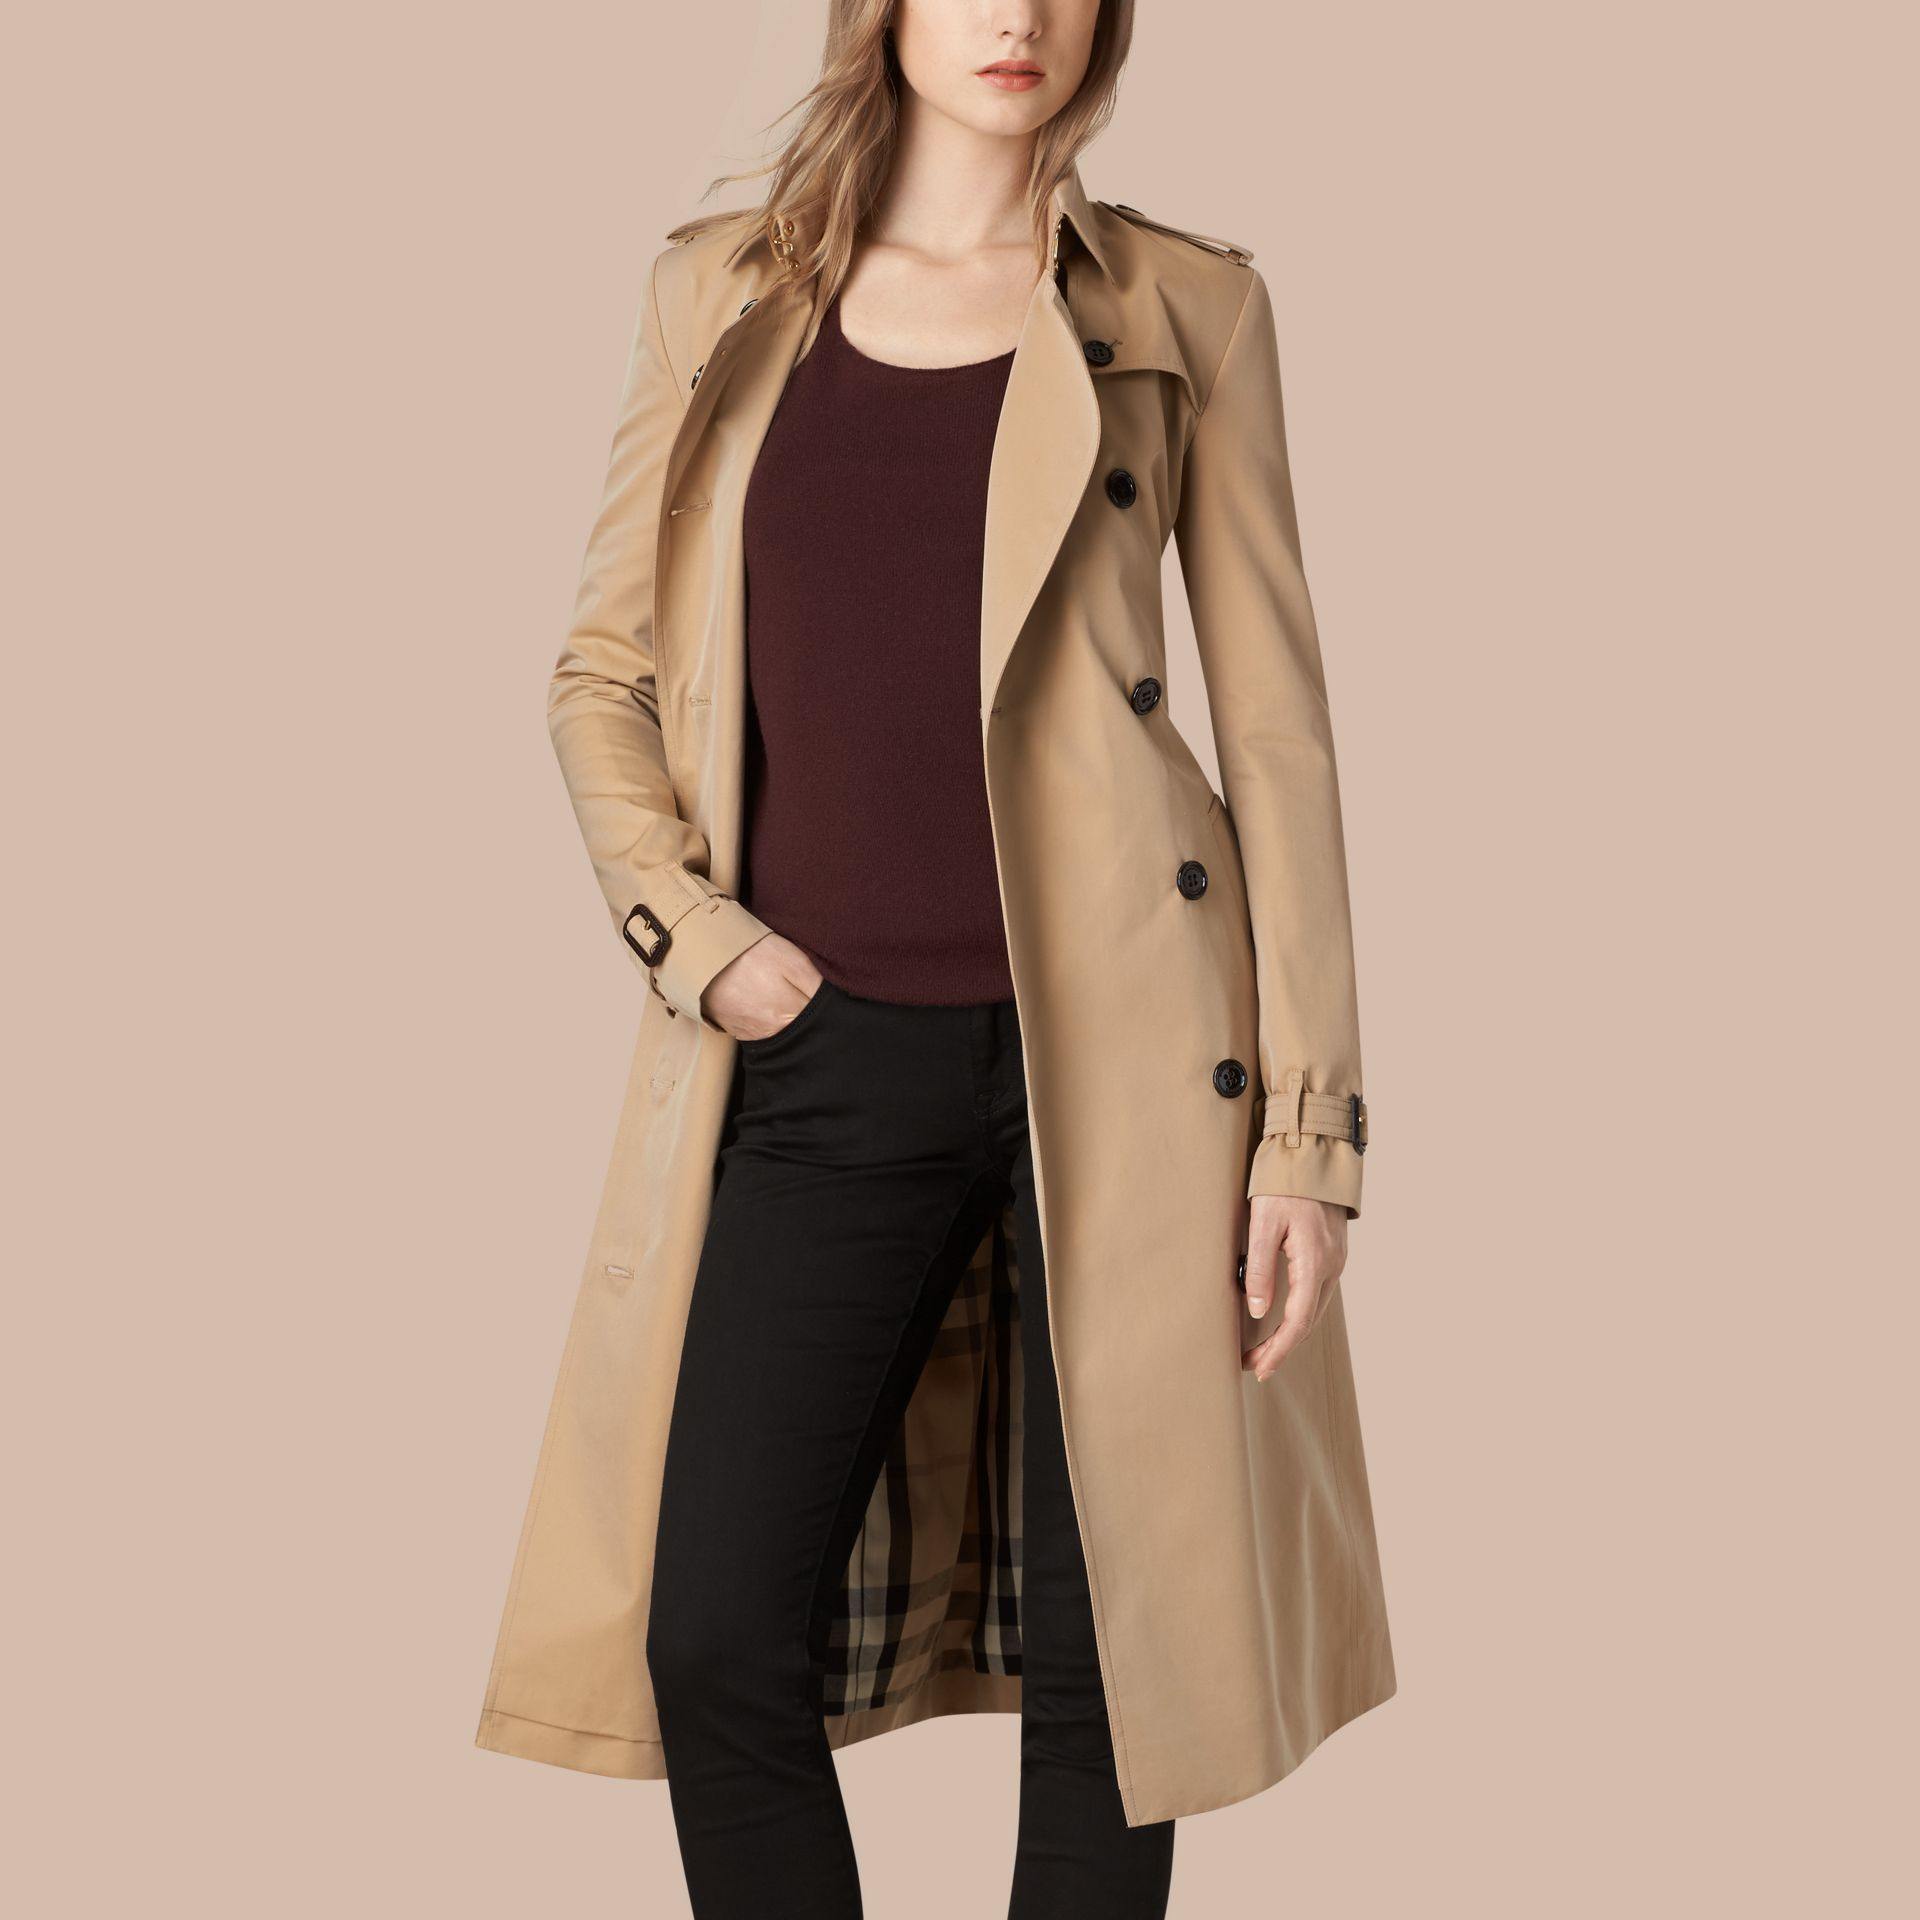 Cotton Gabardine Trench Coat - Women | Burberry - gallery image 2